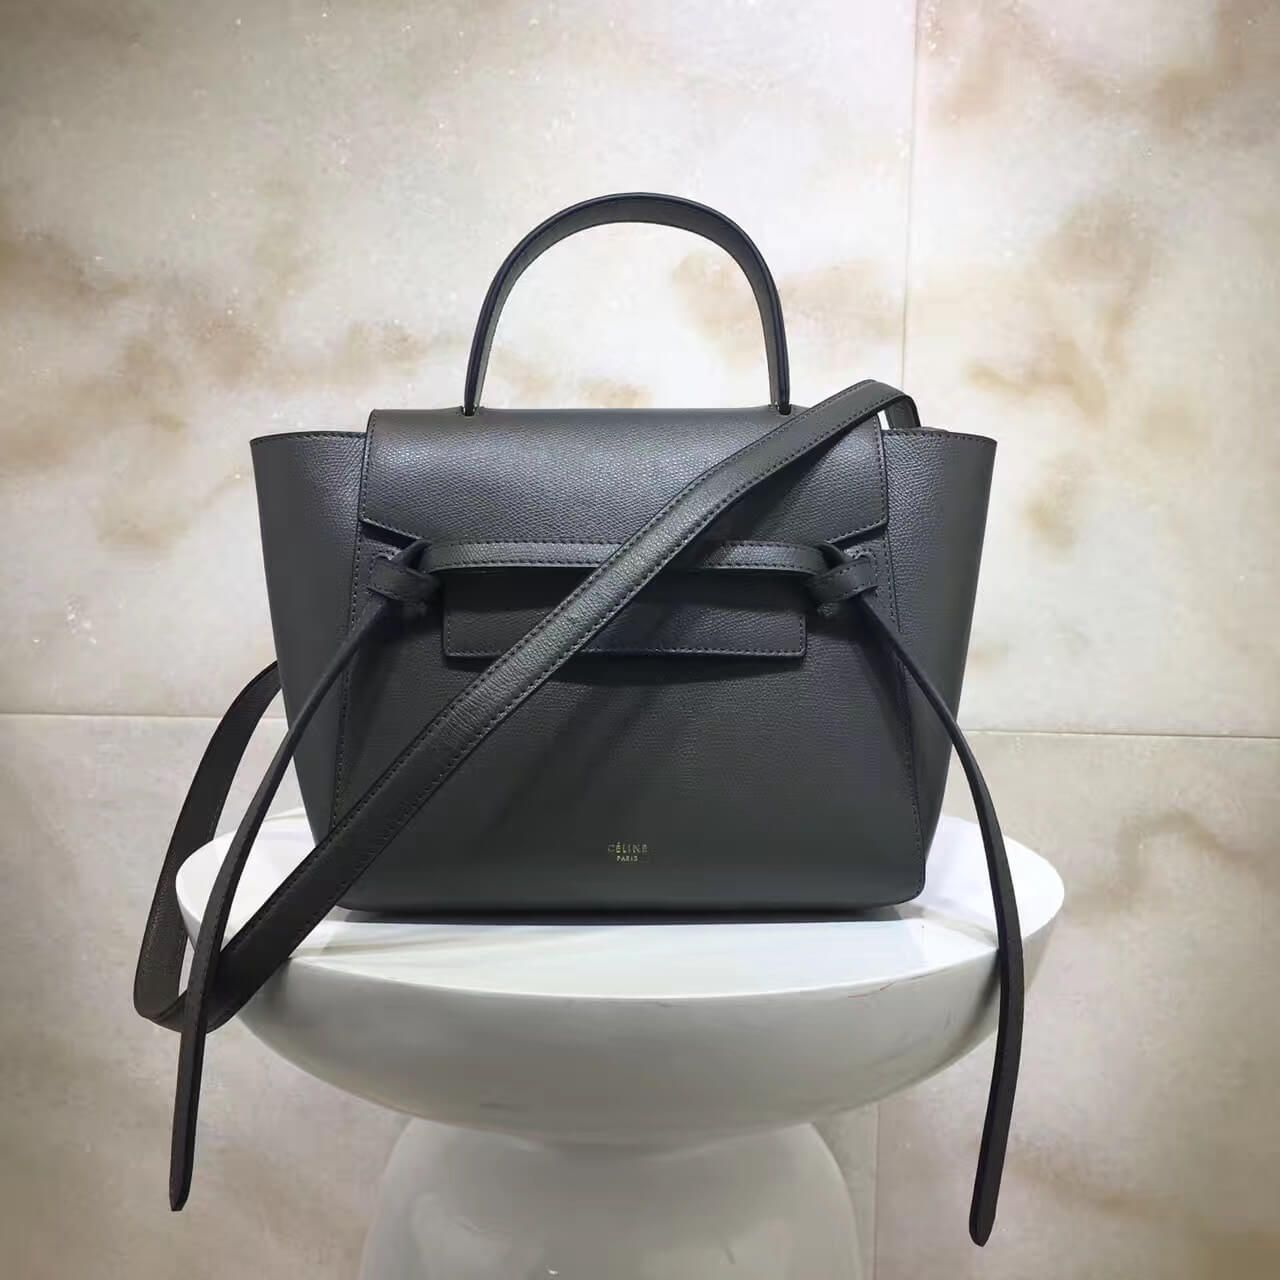 a3320e04cf Celine Micro Belt Handbag In Dark Taupe Grained Calfskin 2017 ...